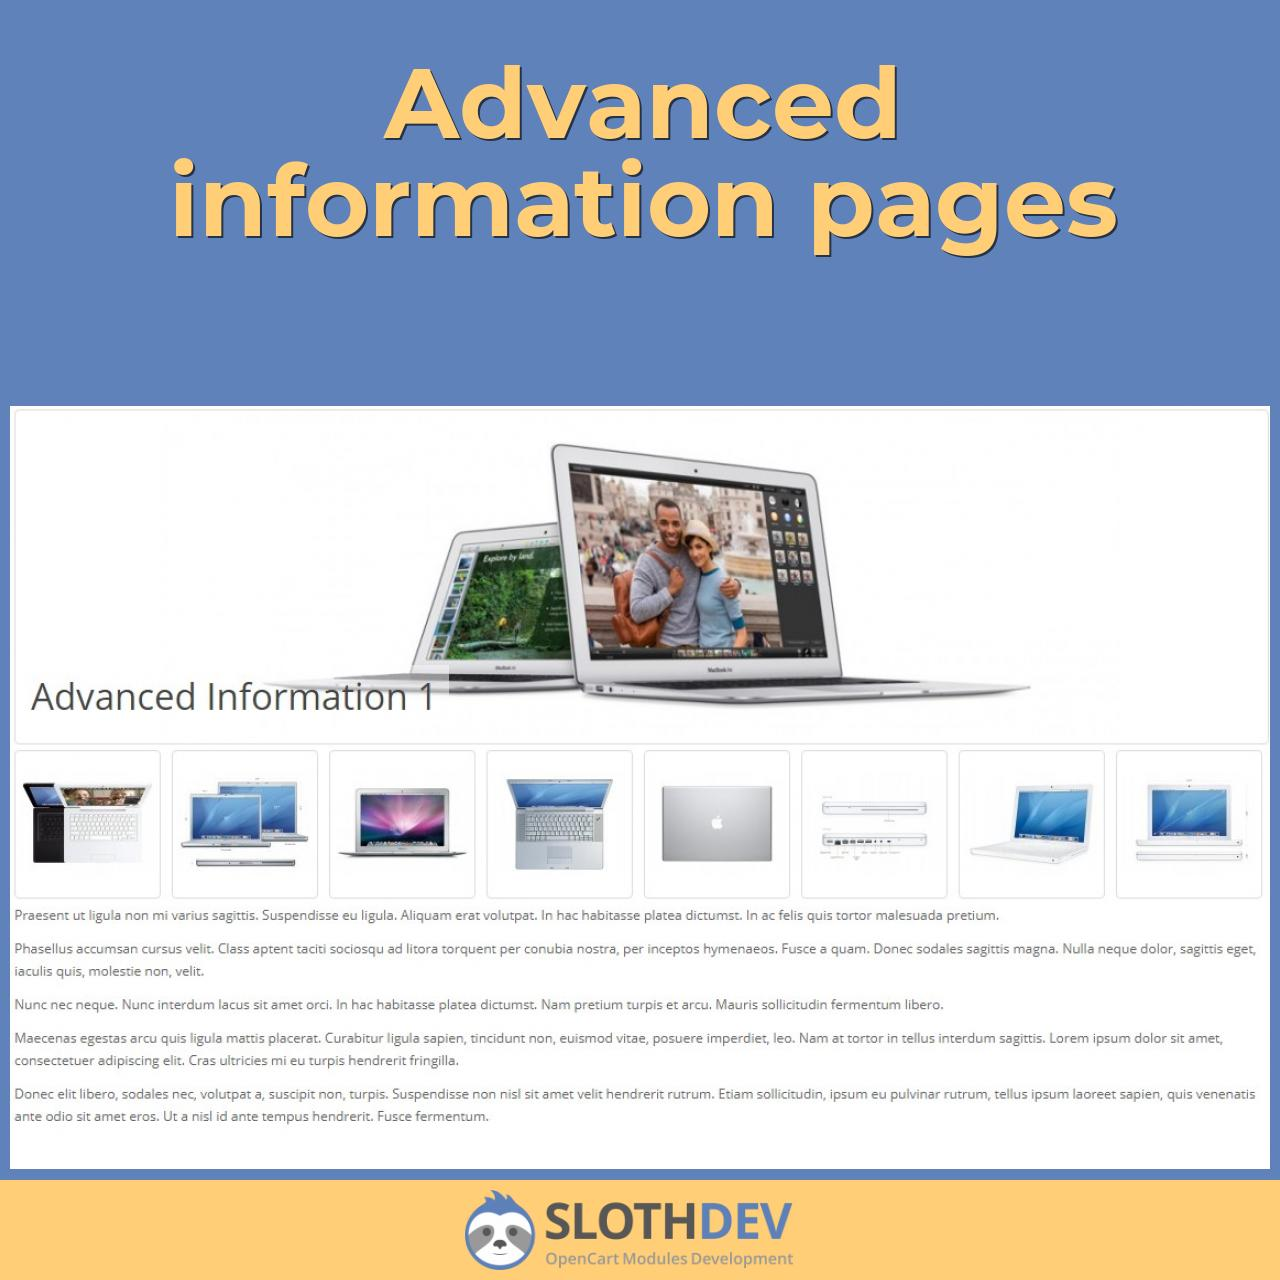 Advanced information pages